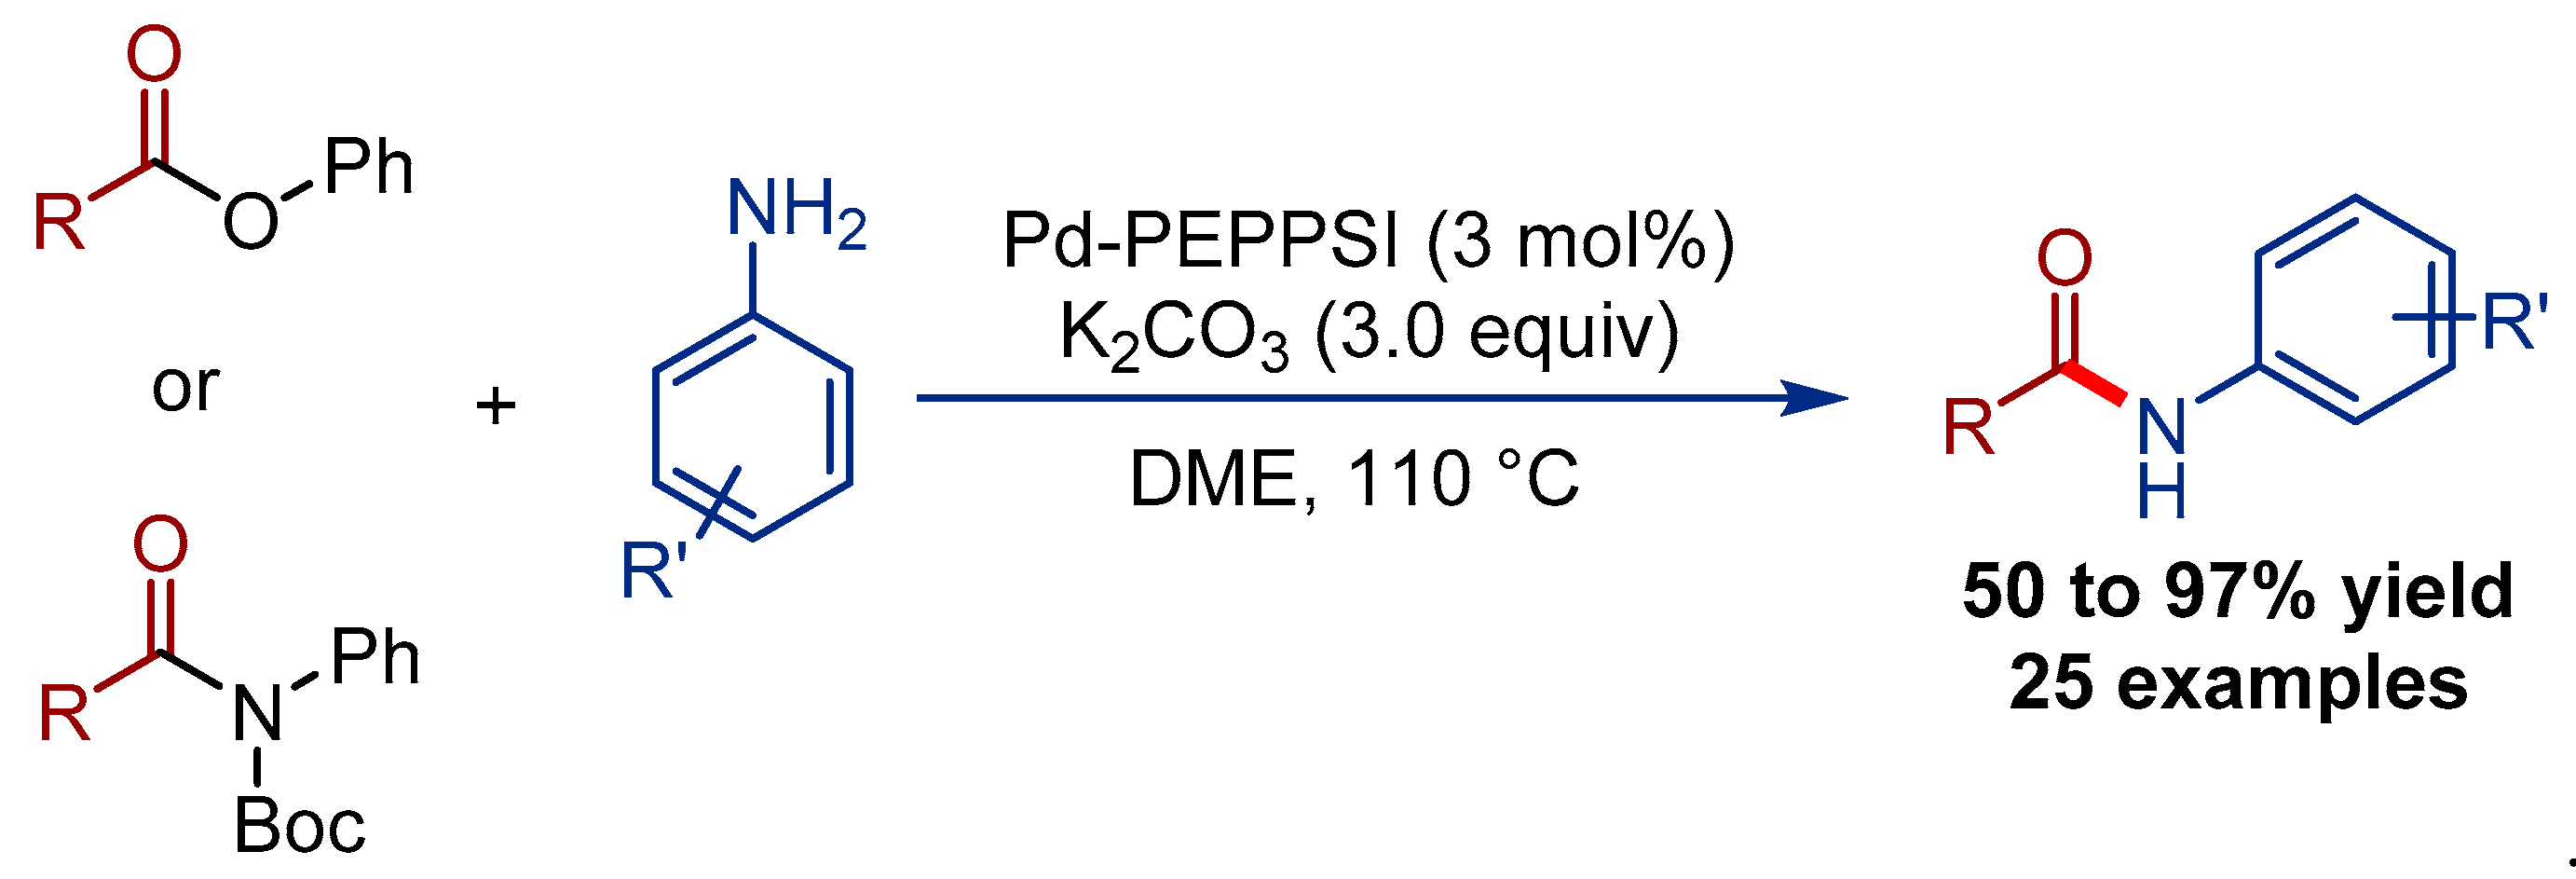 Molecules | Free Full-Text | Well-Defined Pre-Catalysts in